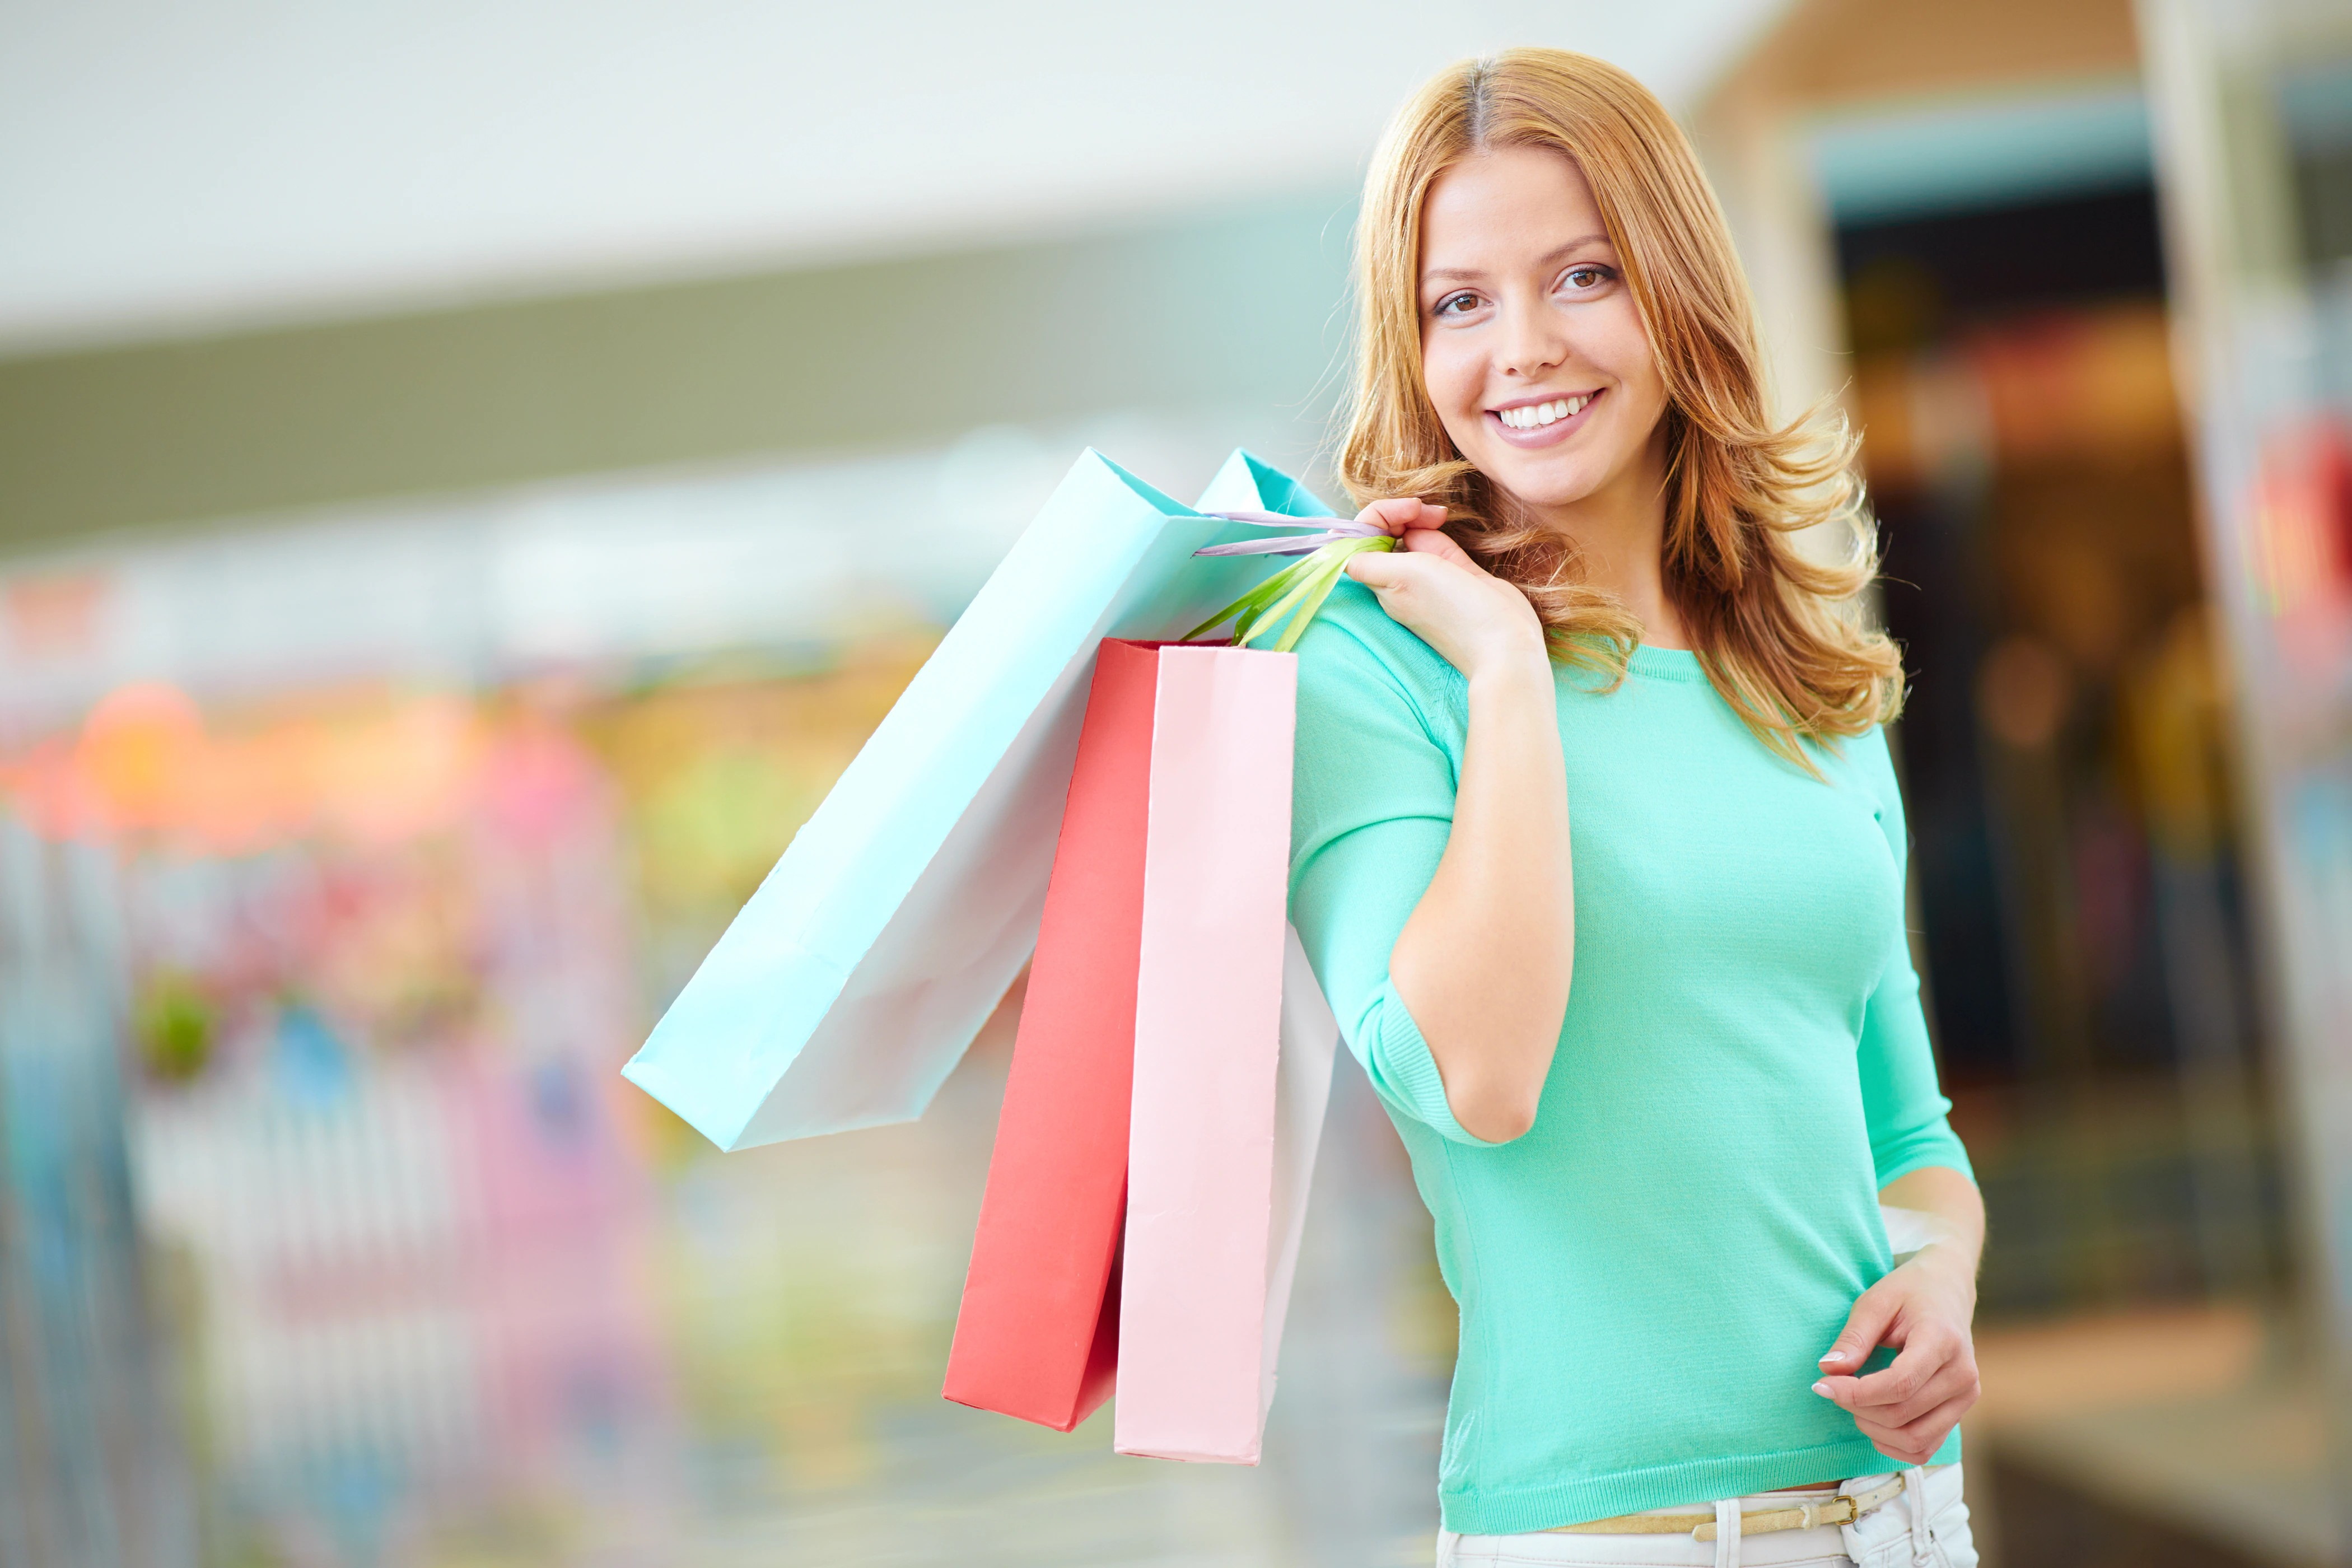 7 Ways to Control Your Shopping Addiction